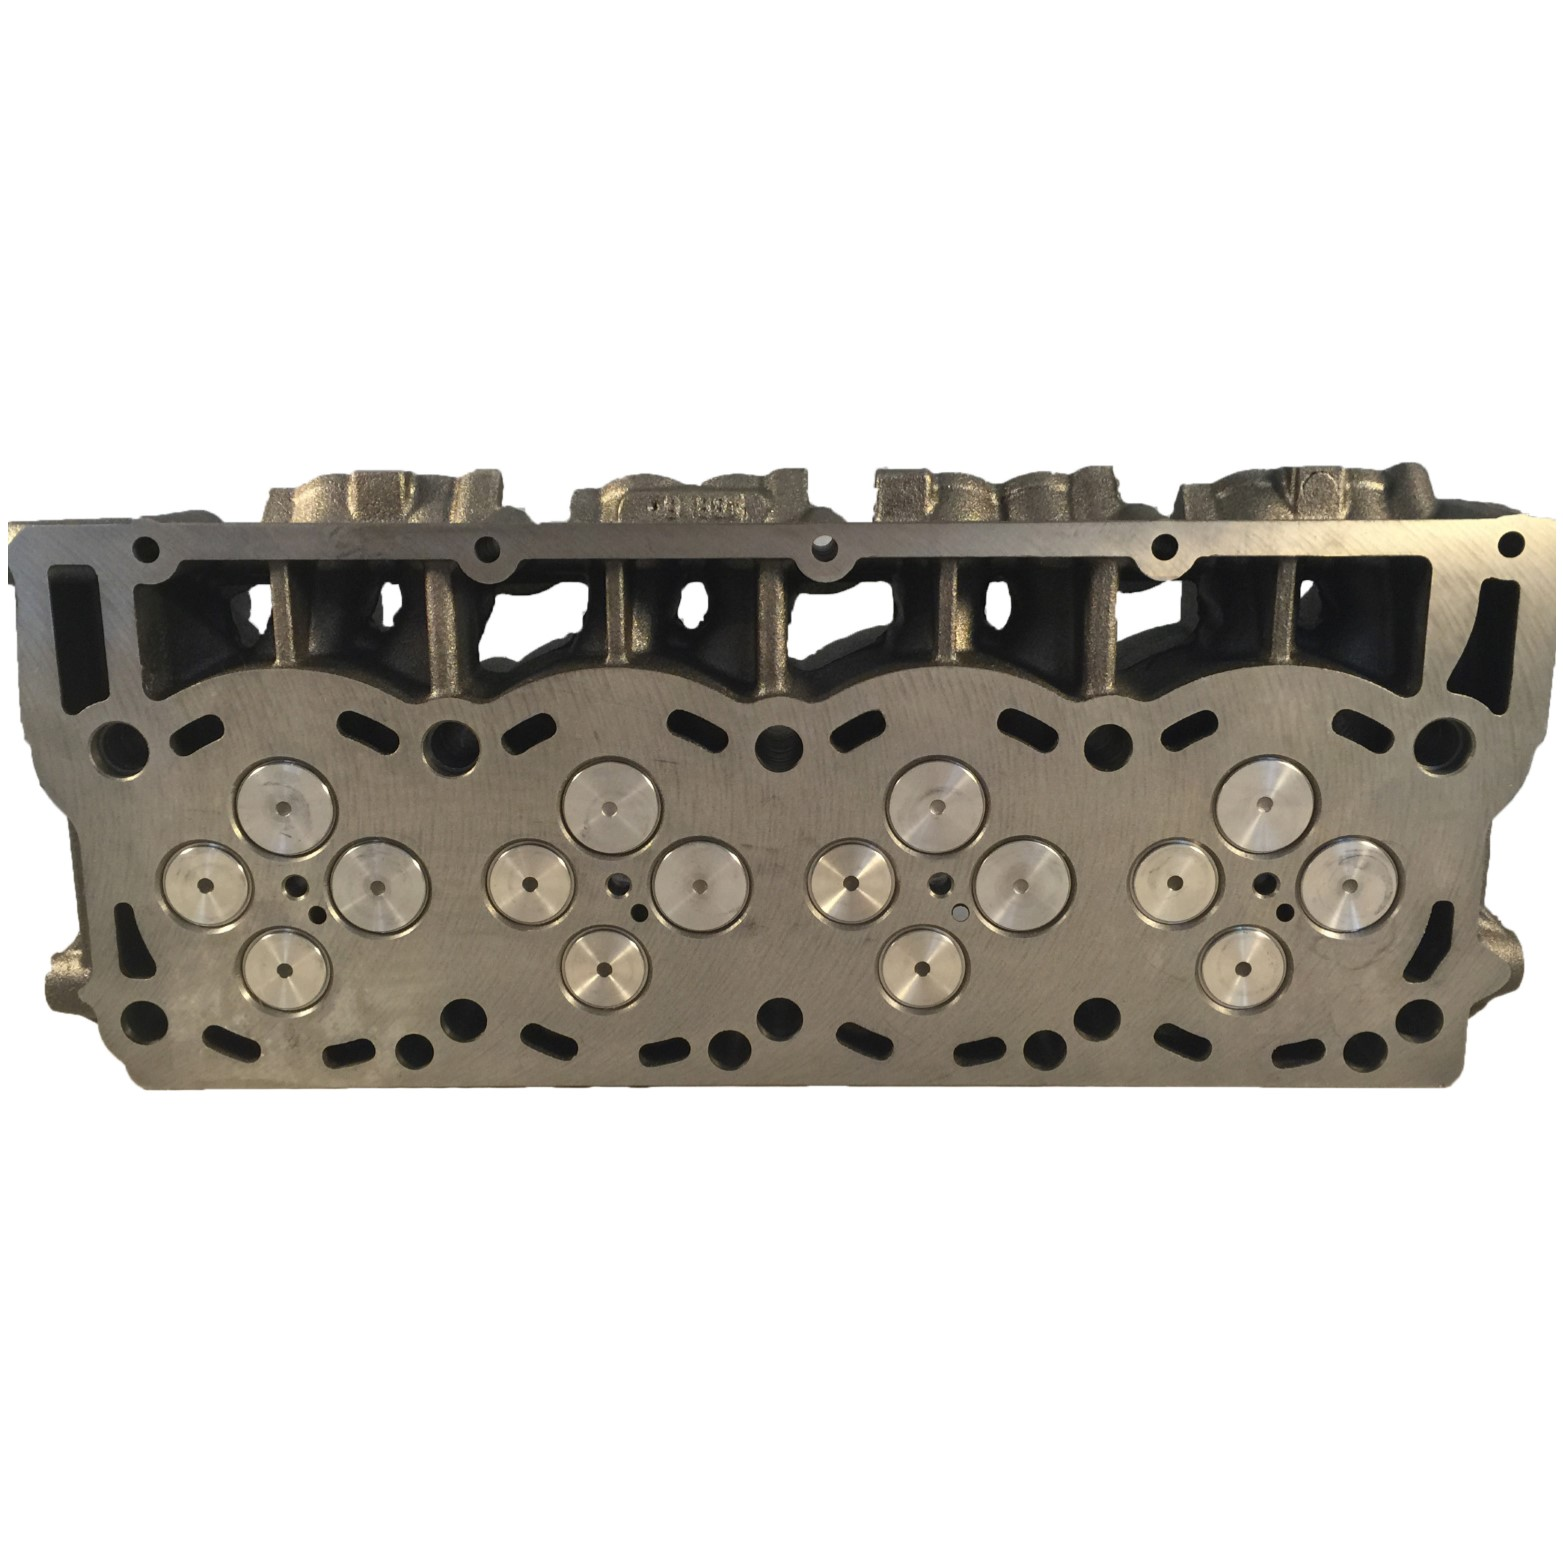 Brand New Cylinder Head Complete with Valve Train Components - DK-FD6.4Loaded - DK Engine Parts